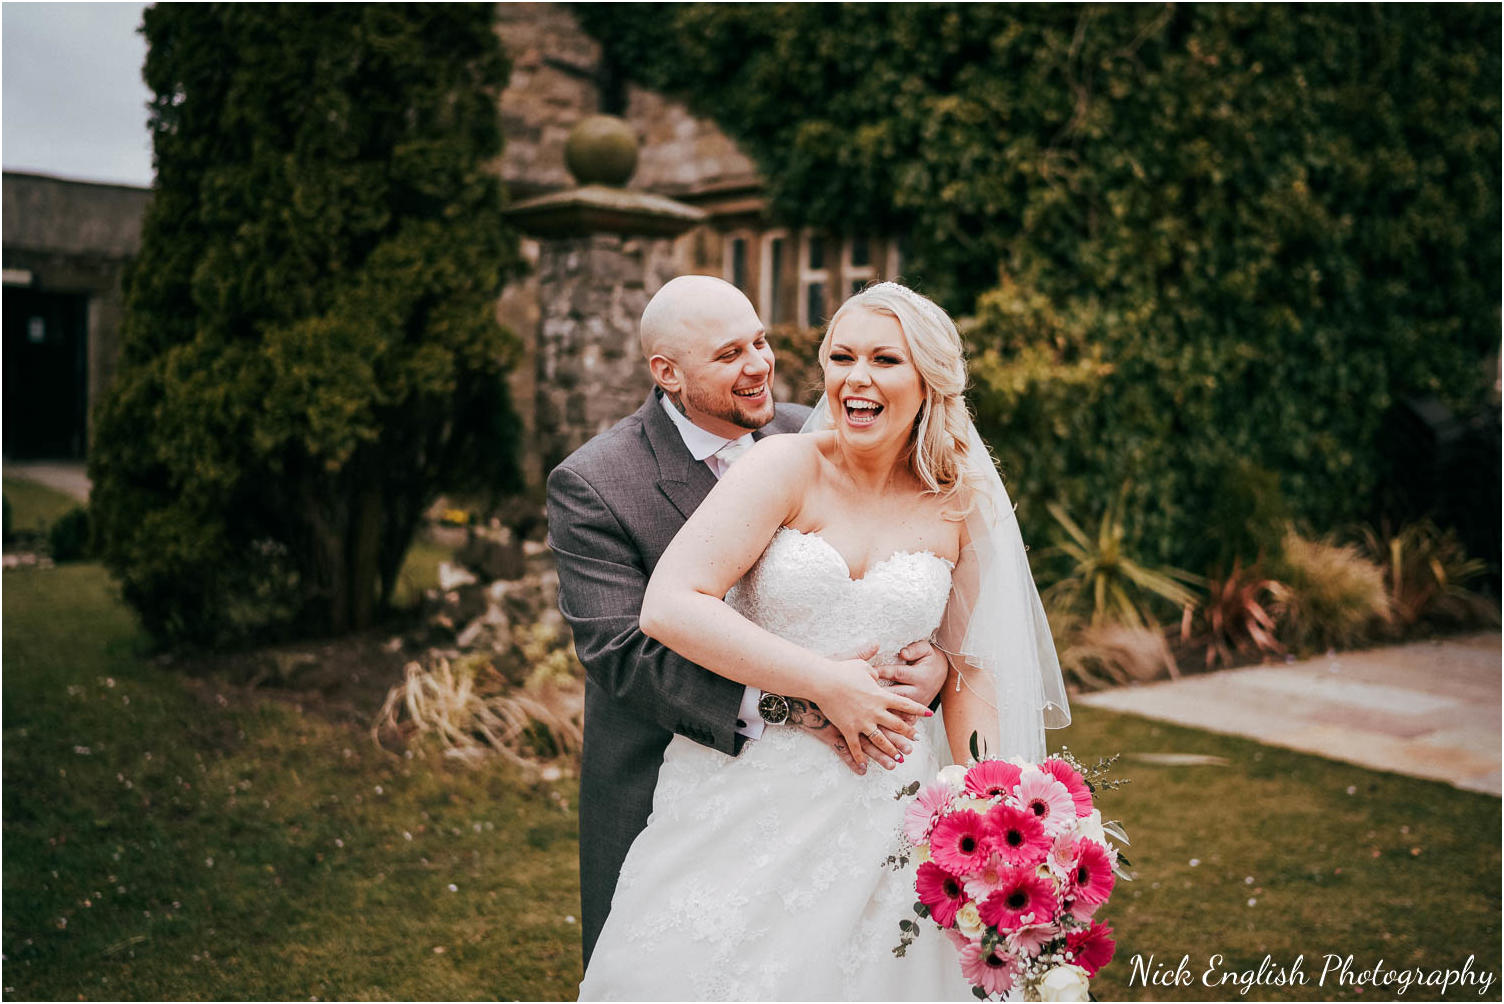 Stirk_House_Wedding_Photographer-96.jpg